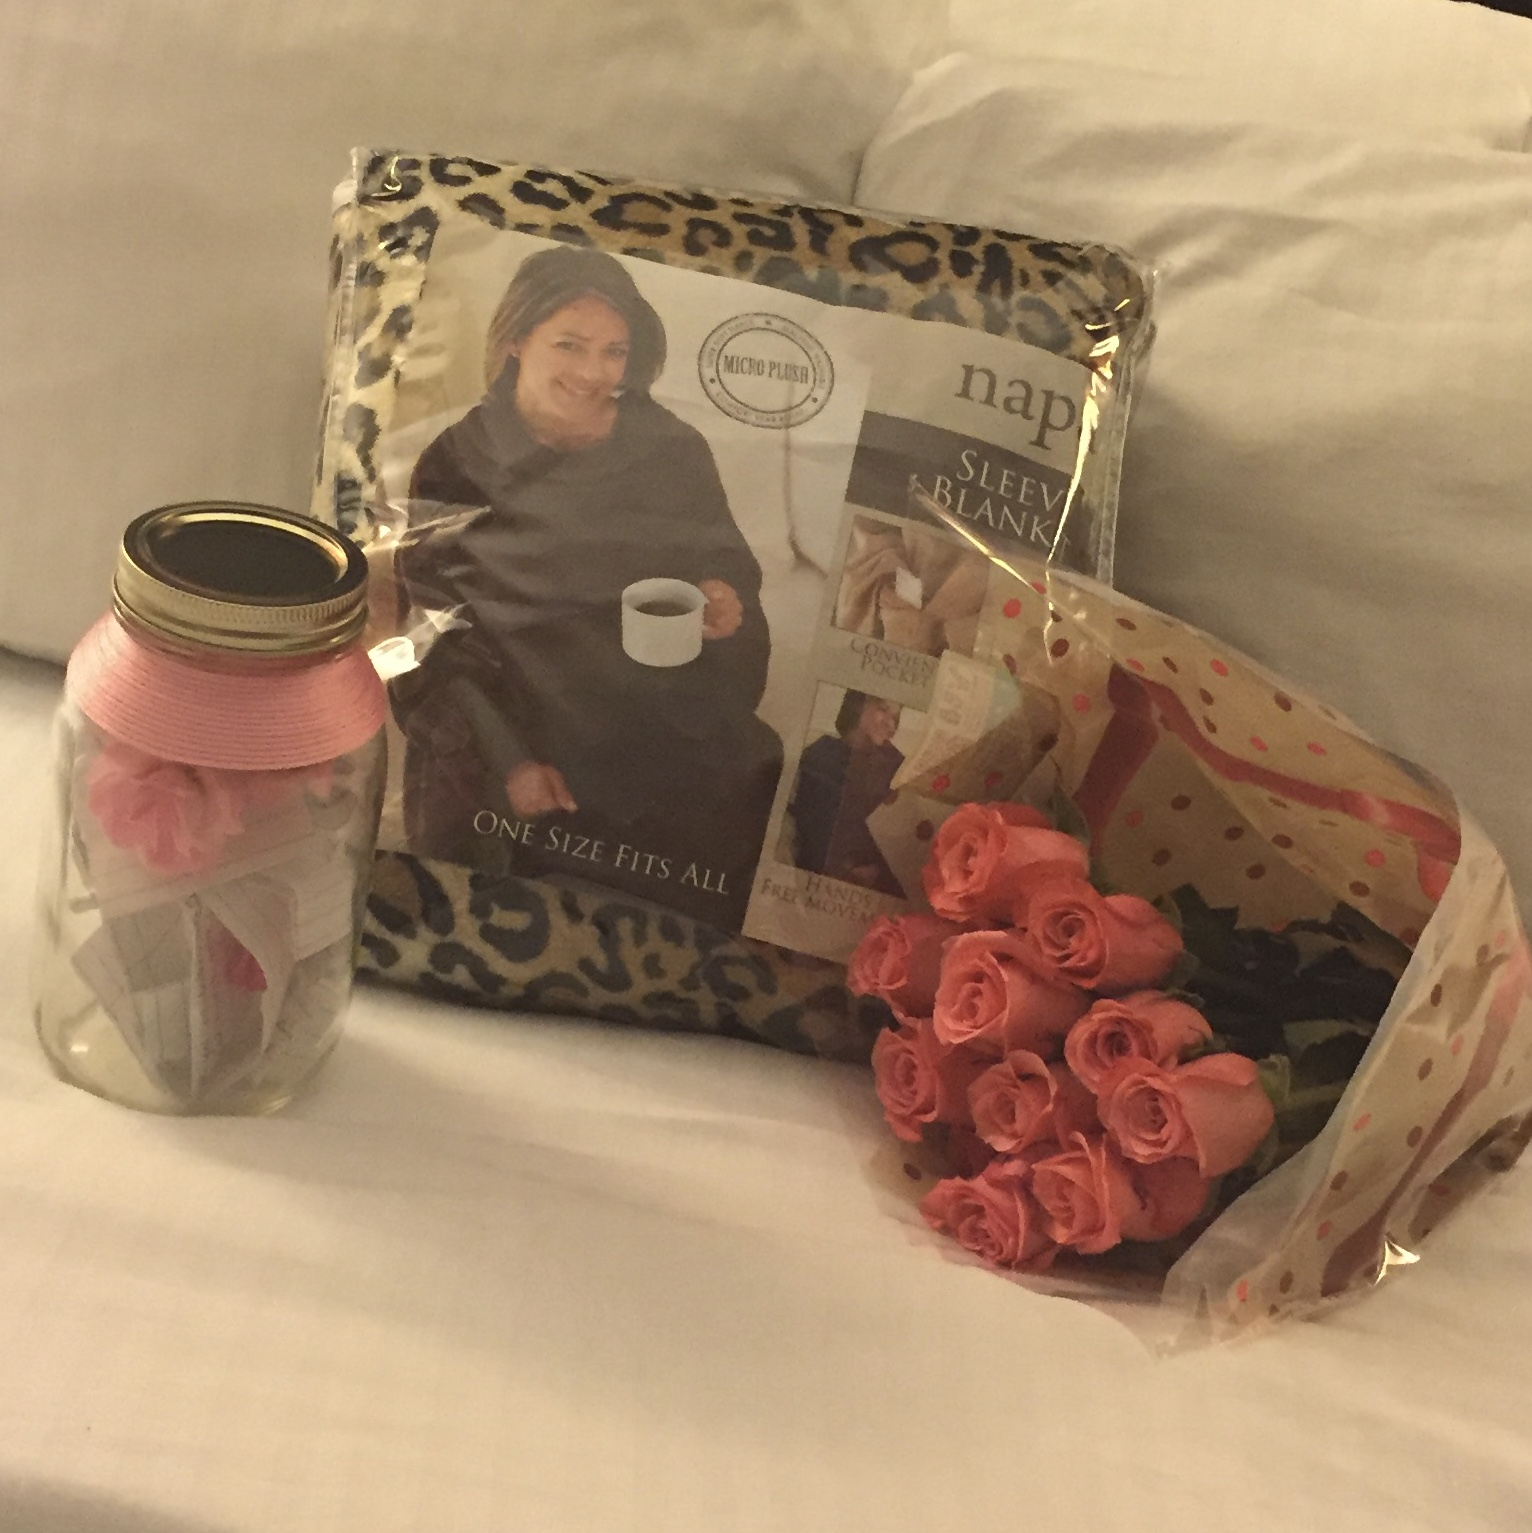 My roses, some love notes, and a Snuggie. If you know me at all you know I am always cold lol